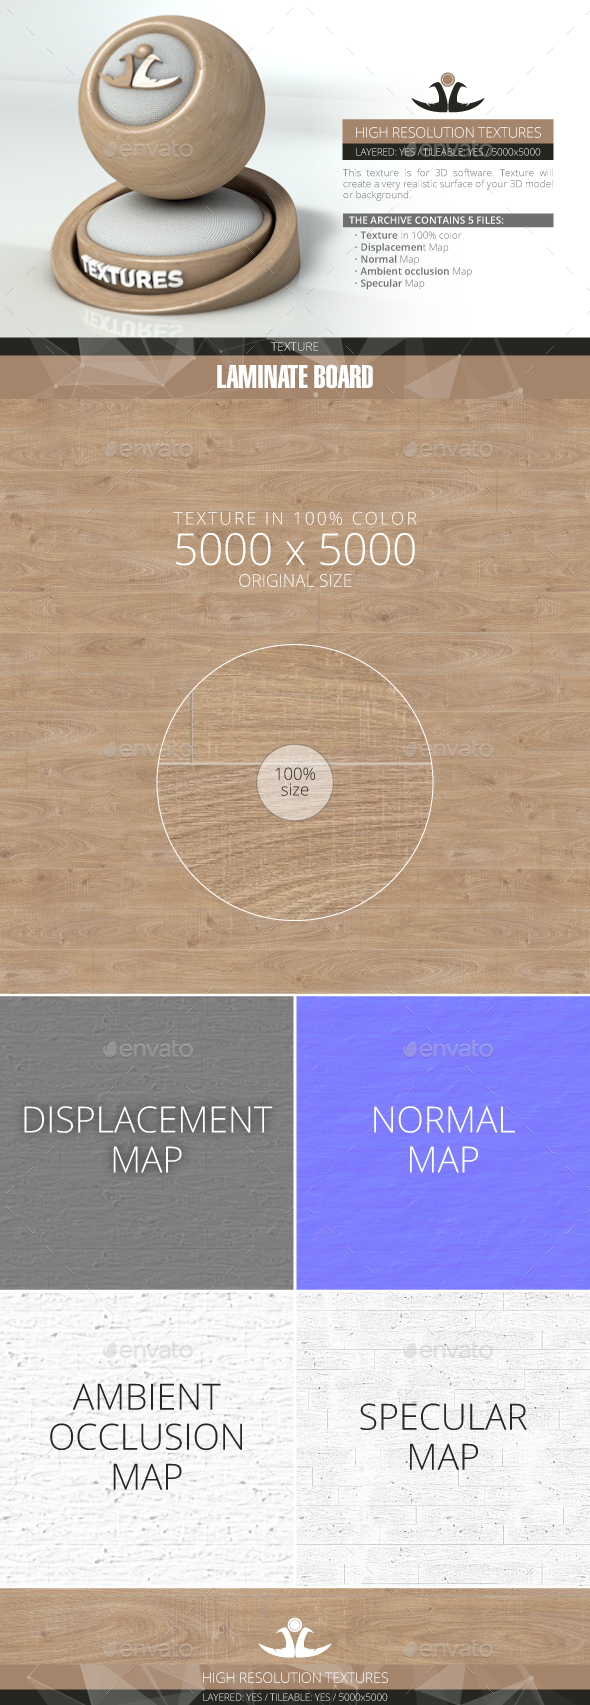 Laminate Board 33 - 3DOcean Item for Sale